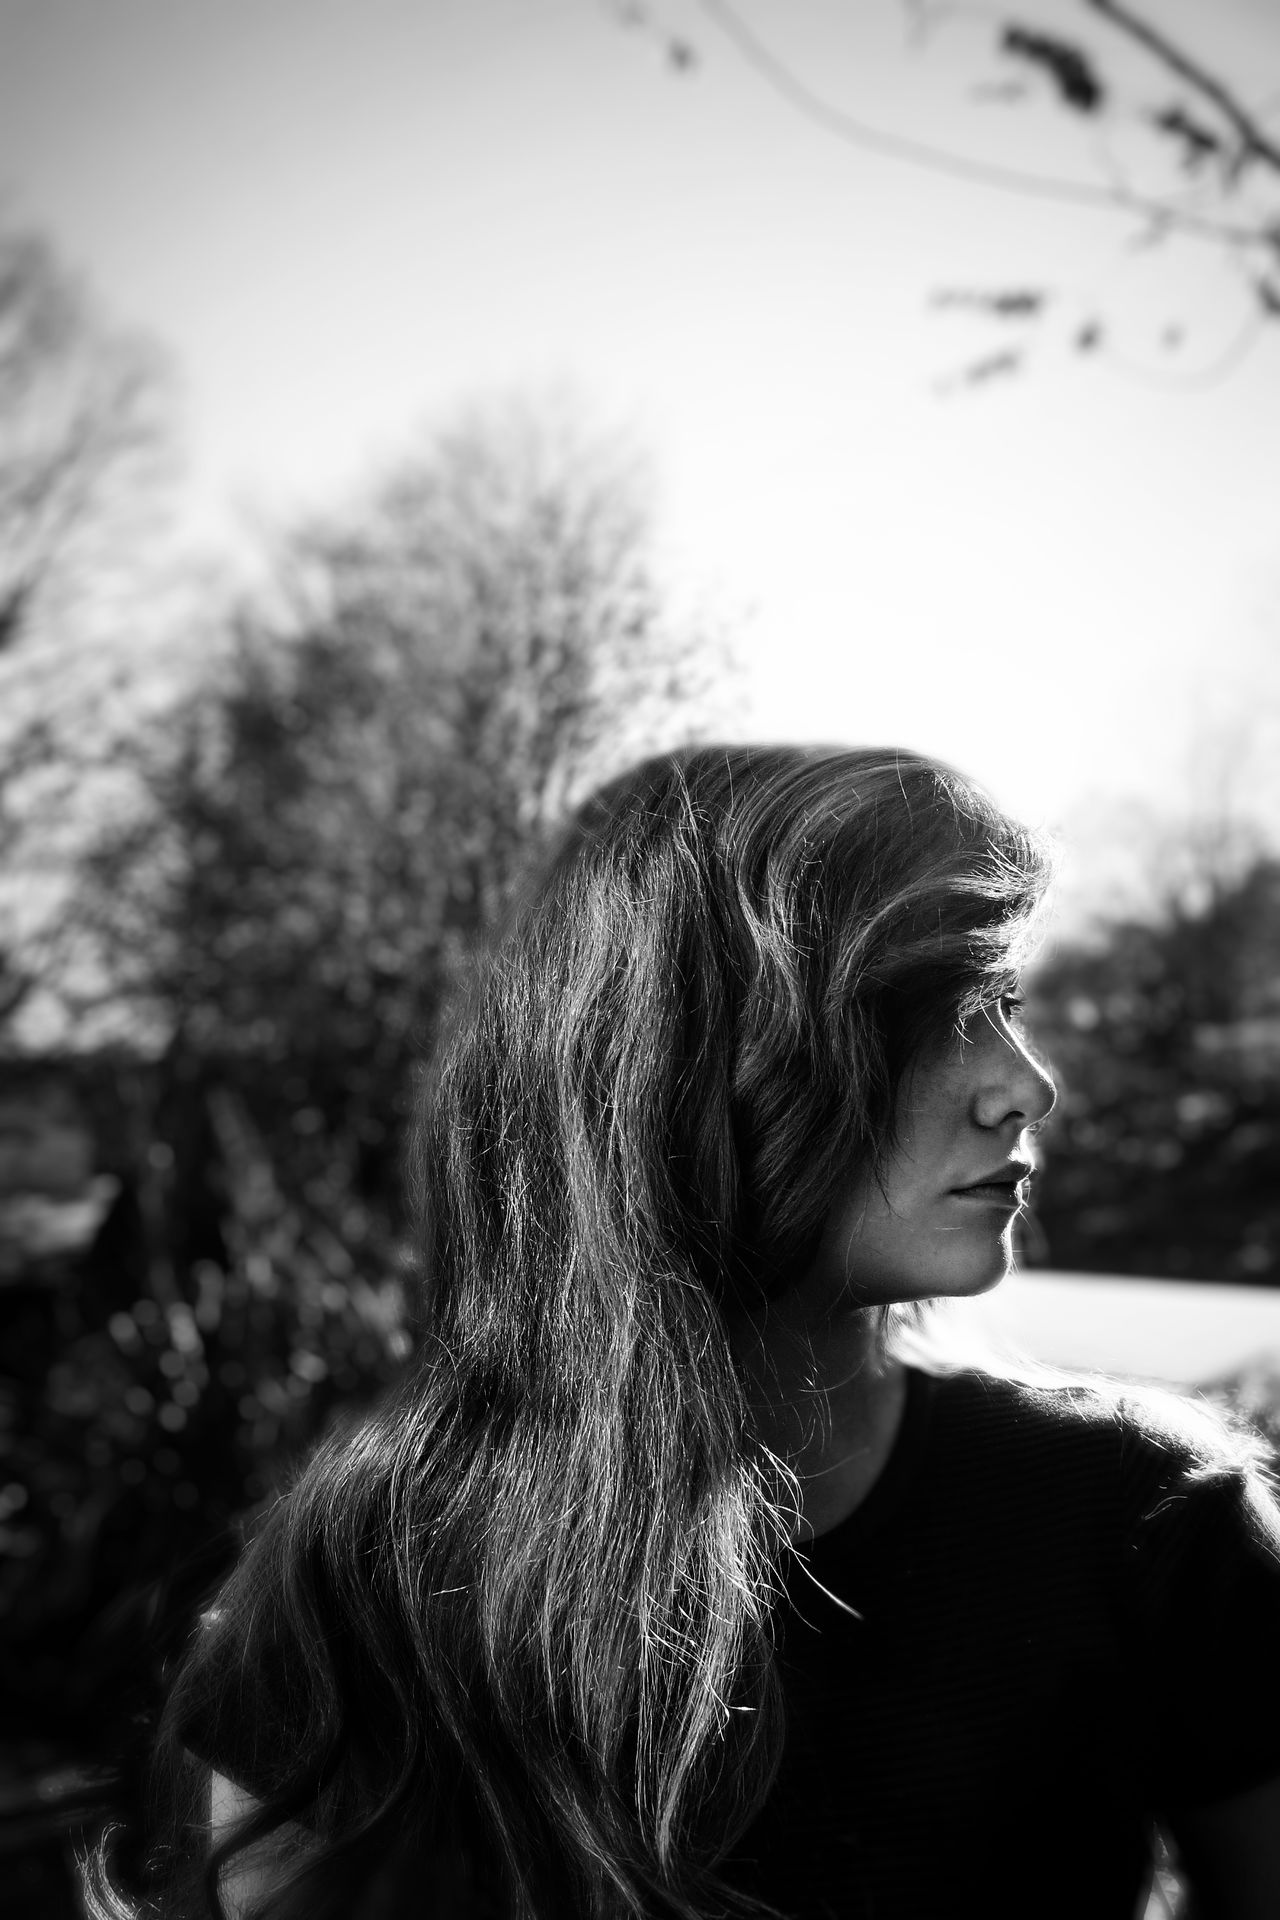 Close-up of woman looking away while standing against bare trees